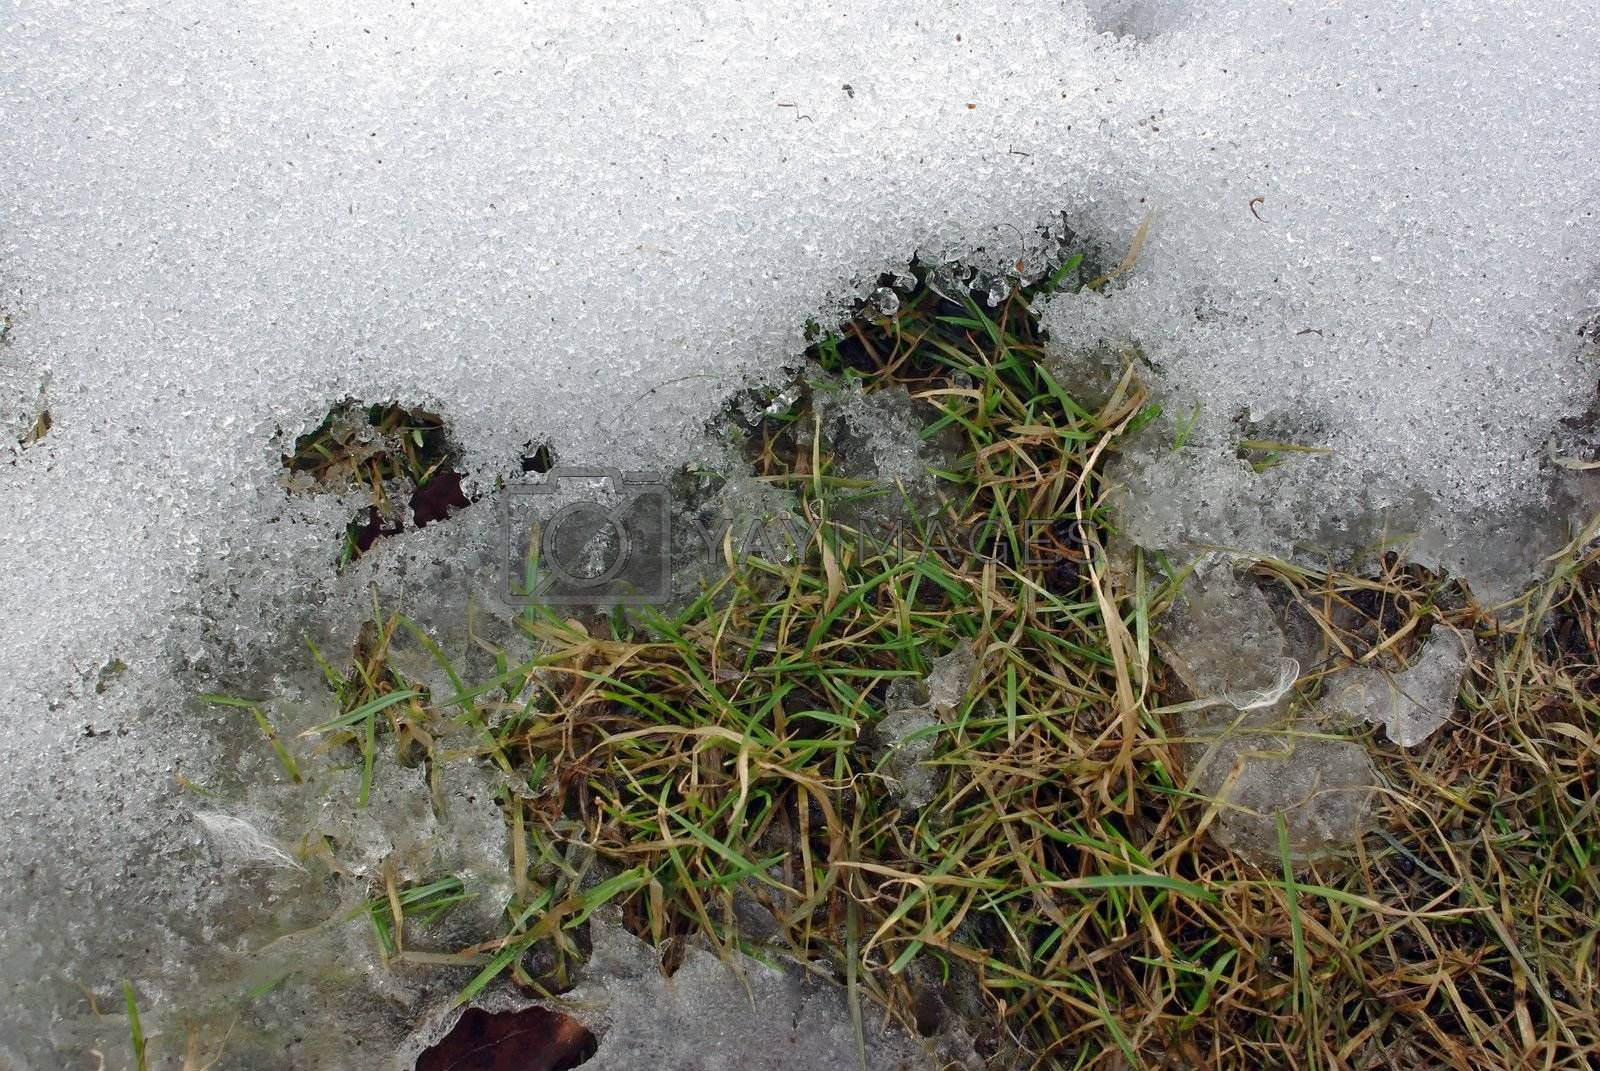 Young grass among dry one with snow melting away.